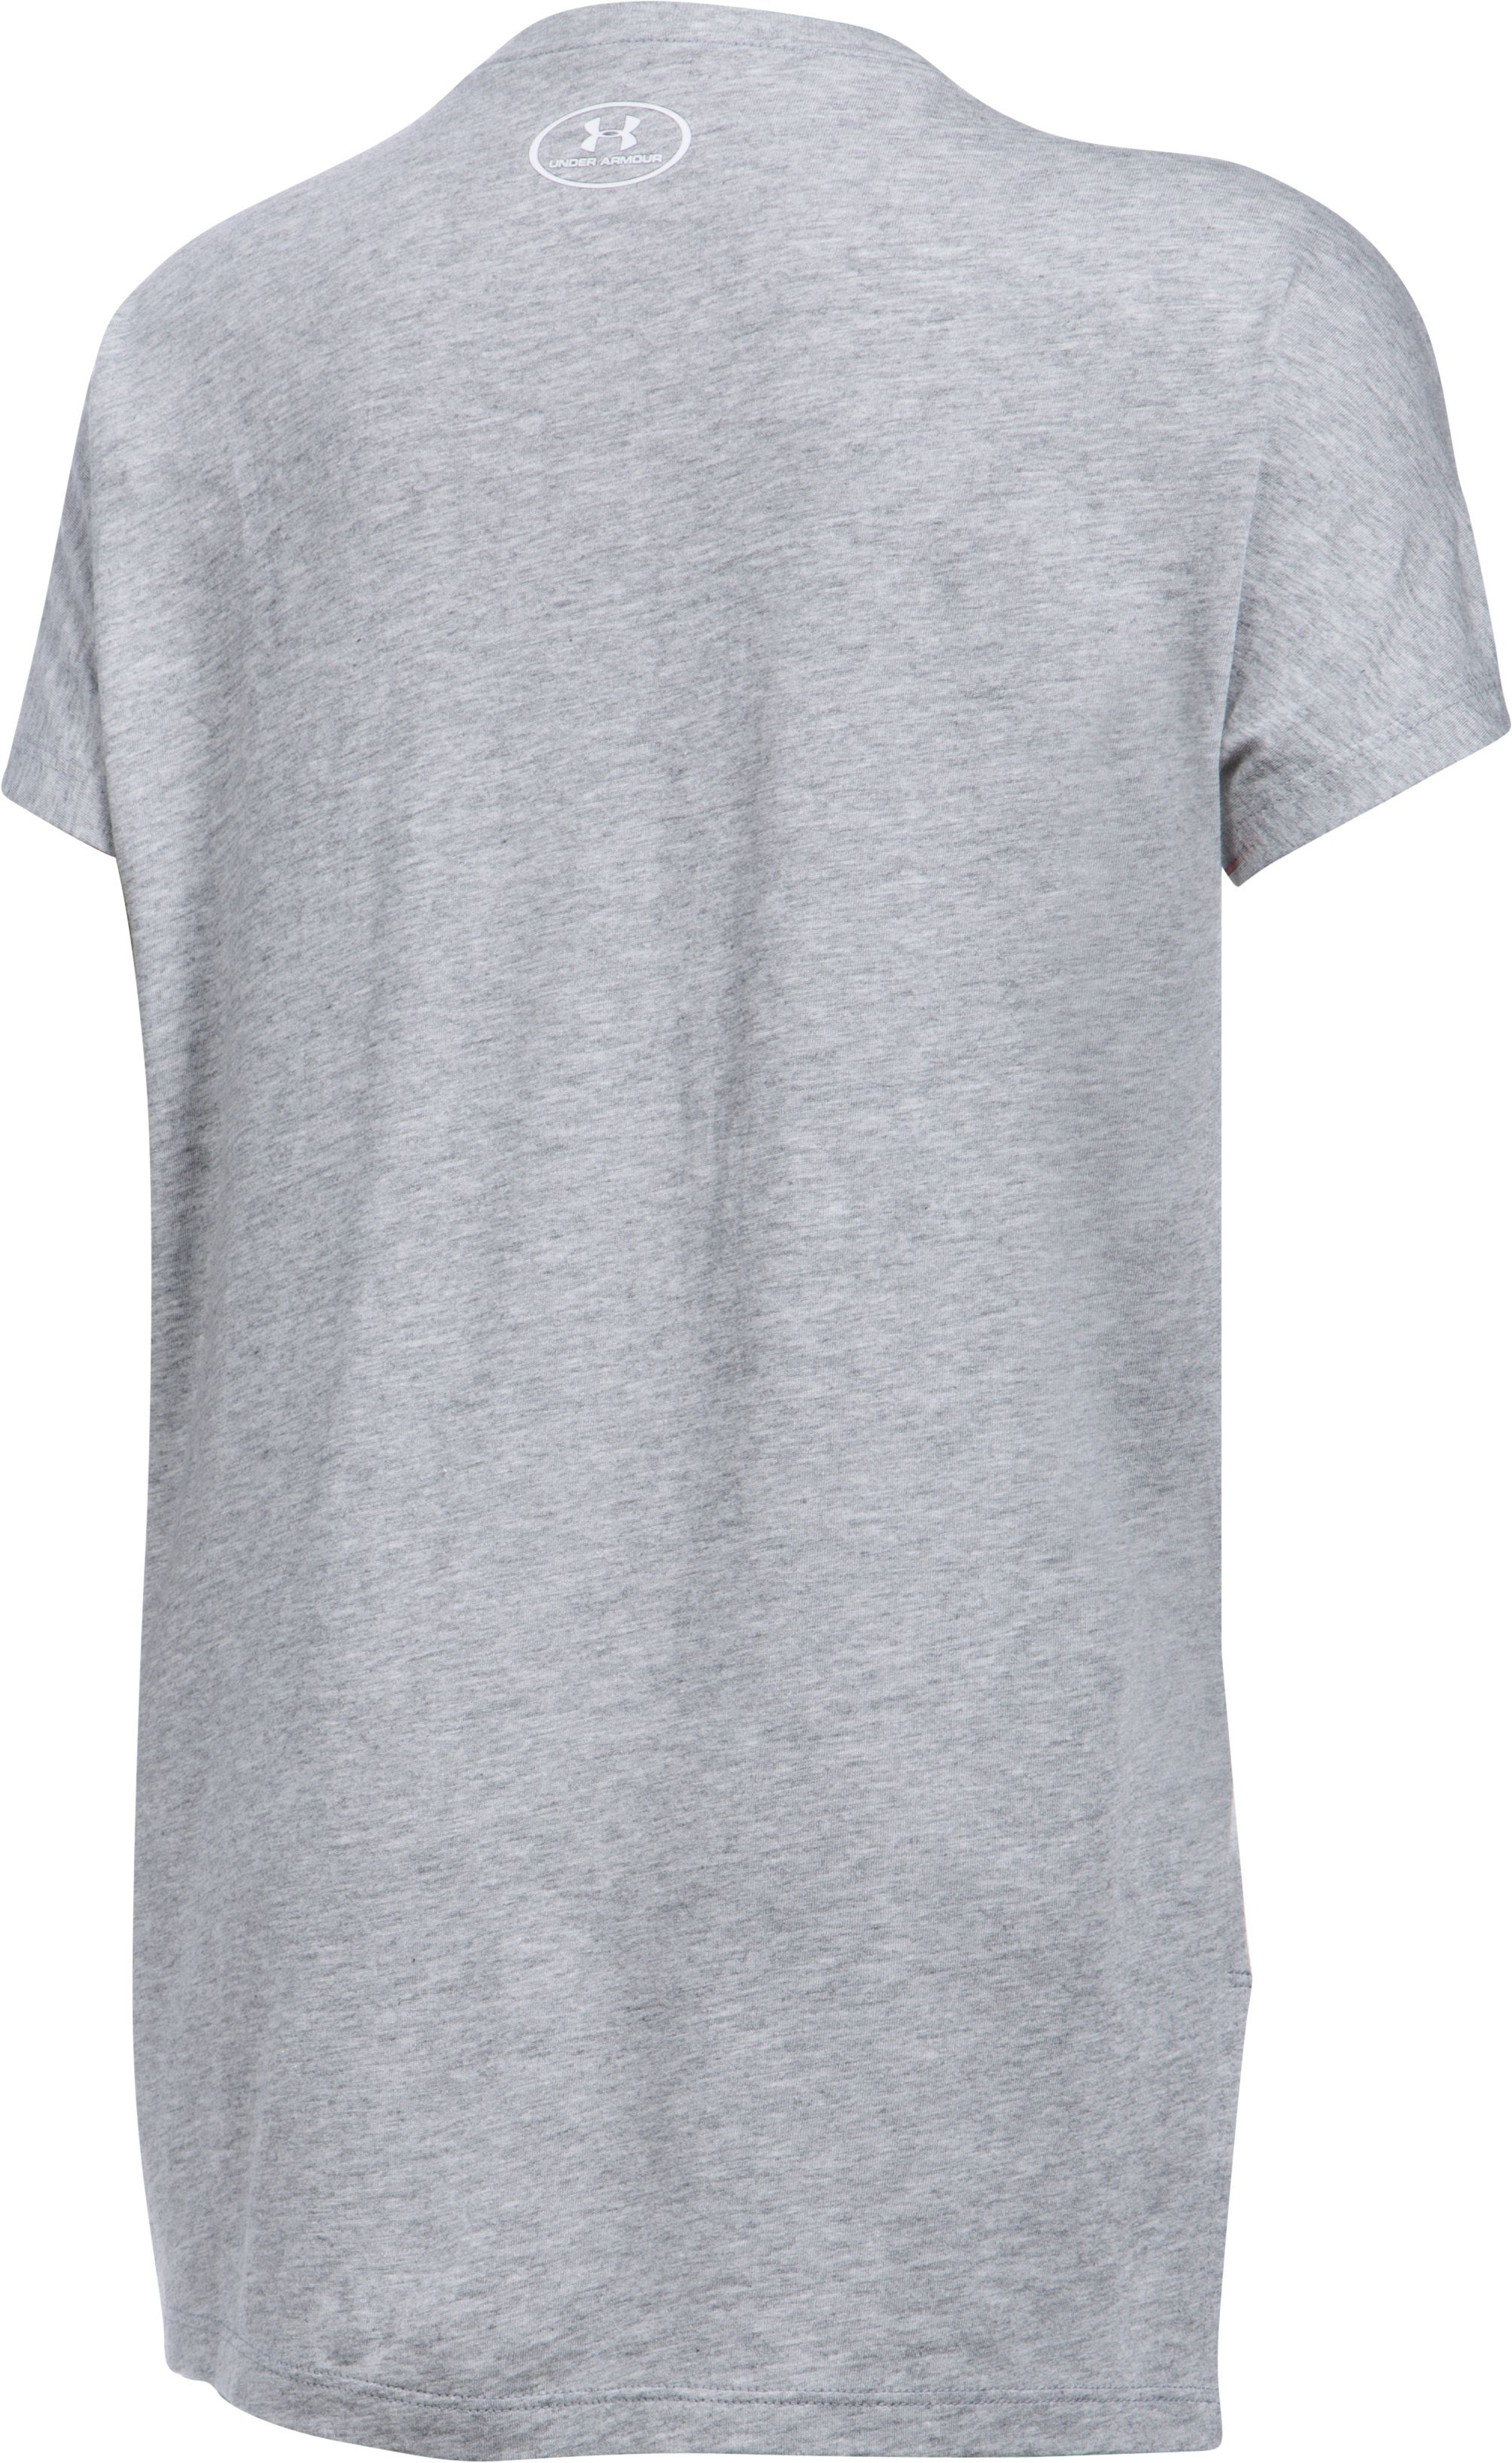 Girls' UA Fierce Short Sleeve T-Shirt, True Gray Heather